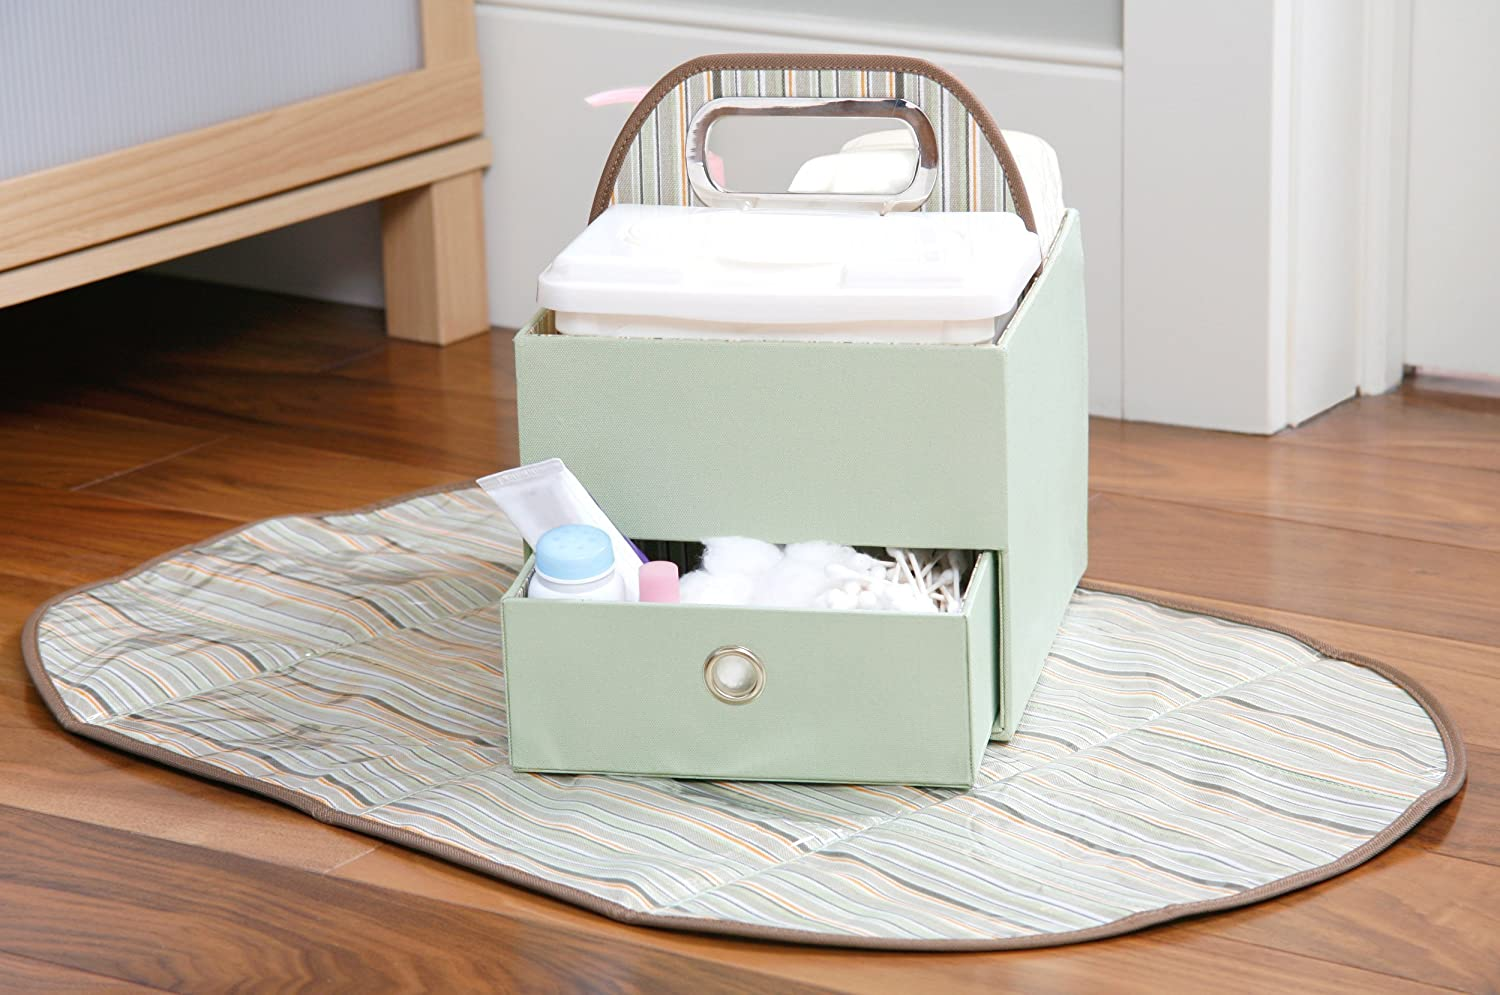 Amazon.com : JJ Cole Collections Diaper Caddy, Green Stripe (Older Version)  (Discontinued by Manufacturer) : Baby Diaper Changing Kits : Baby